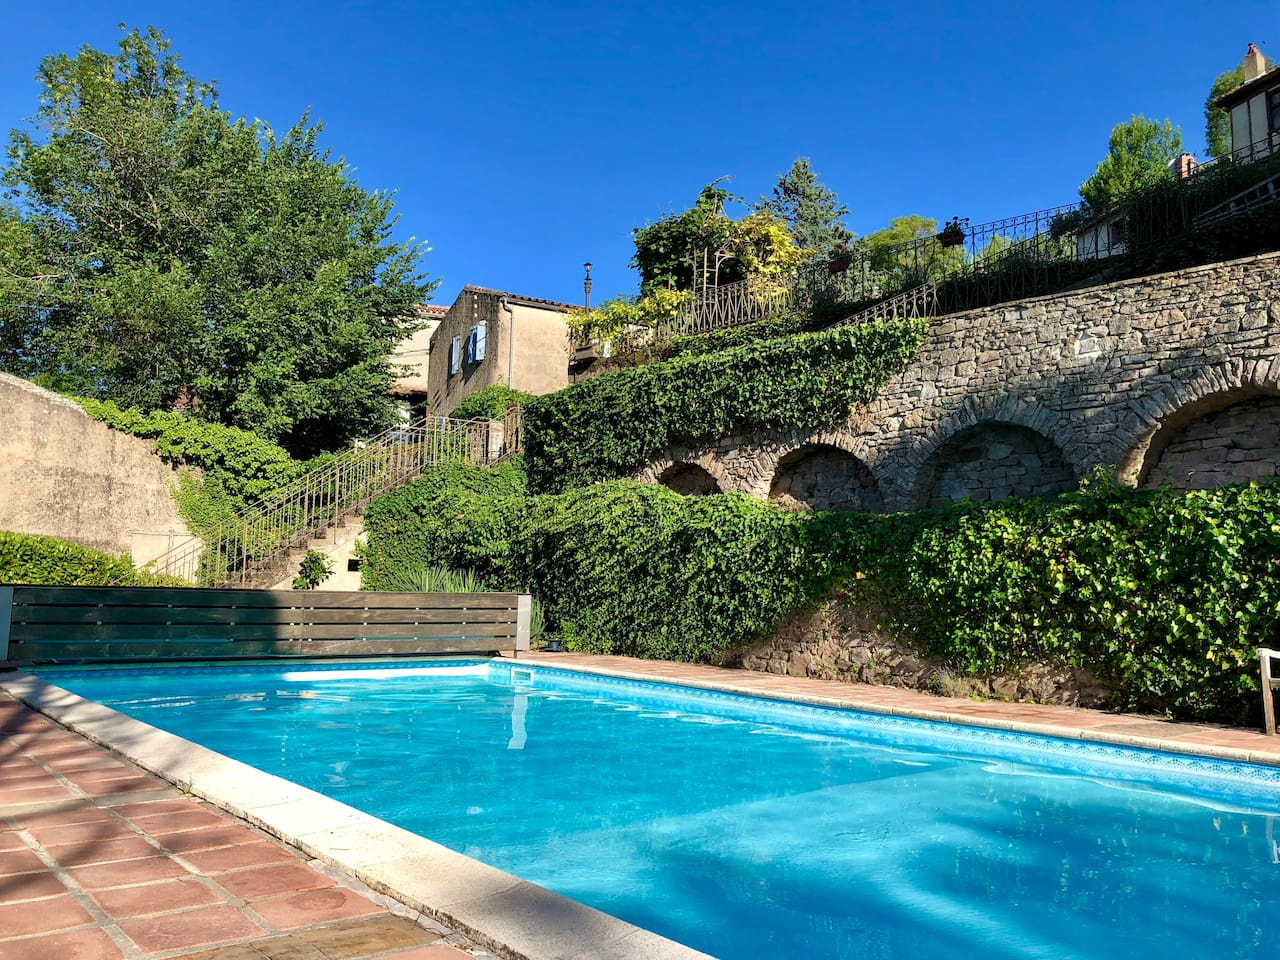 View of the pool looking to the terrace above and the Gite on the left hand side with the blue shutters